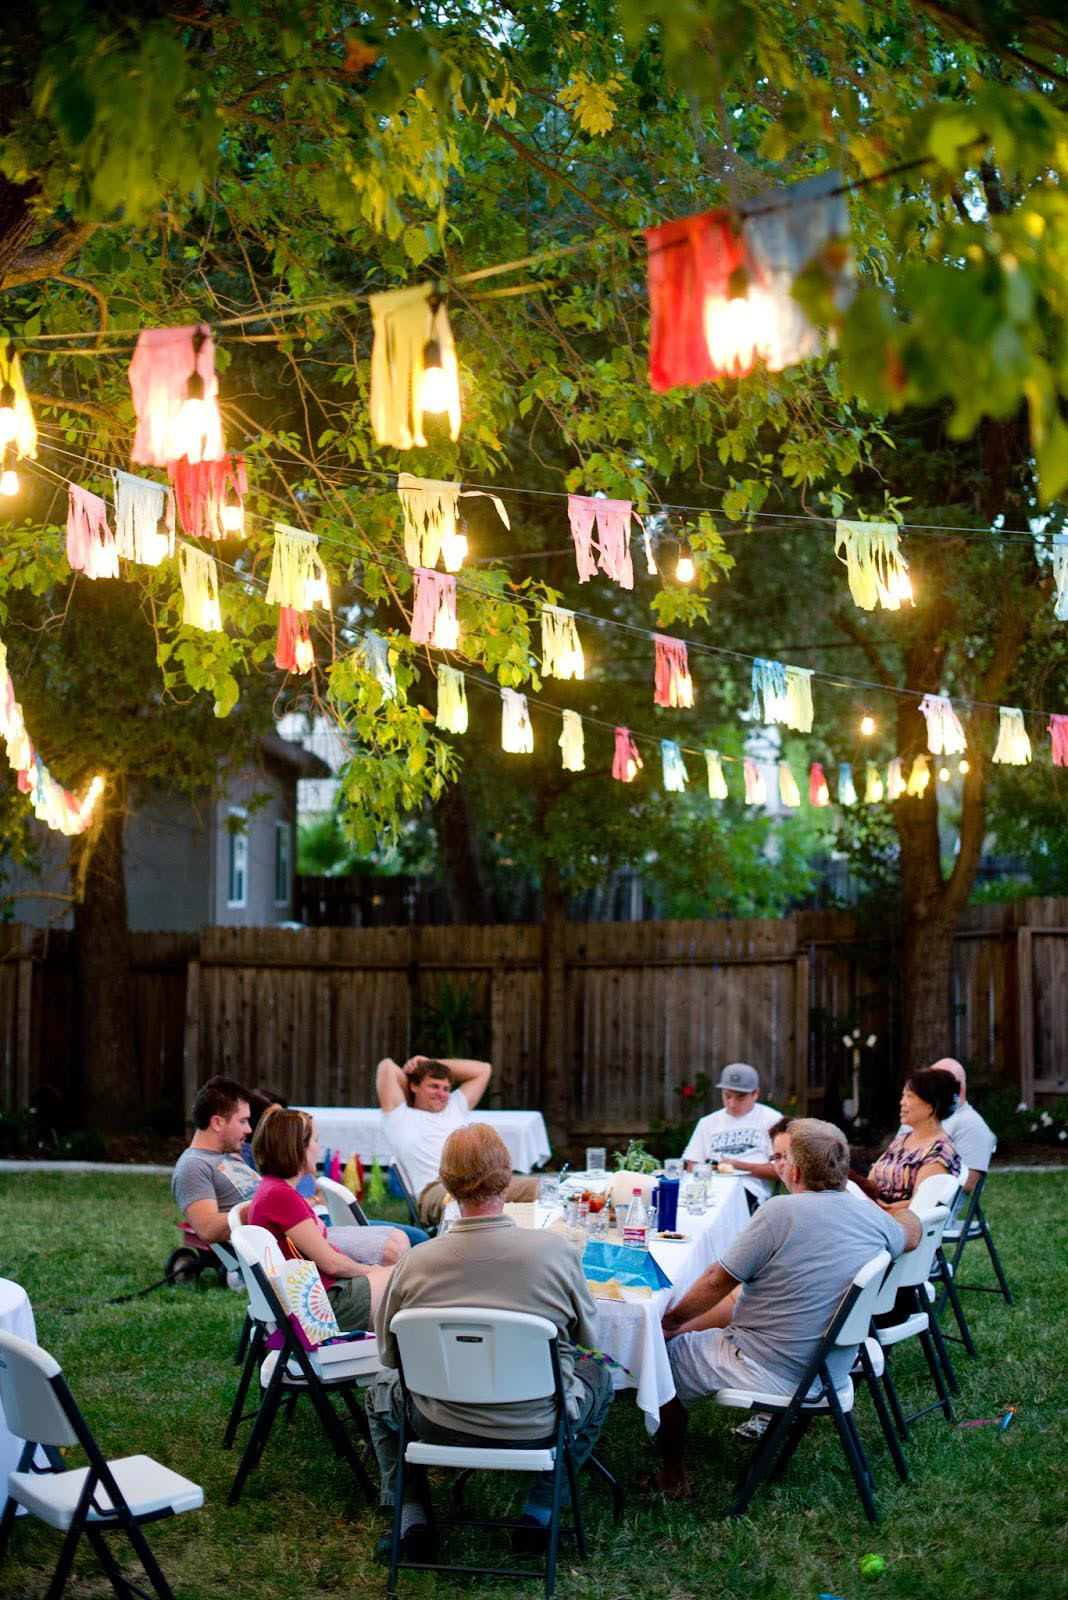 Some creative outdoor party games home party ideas for Backyard party decoration ideas for adults